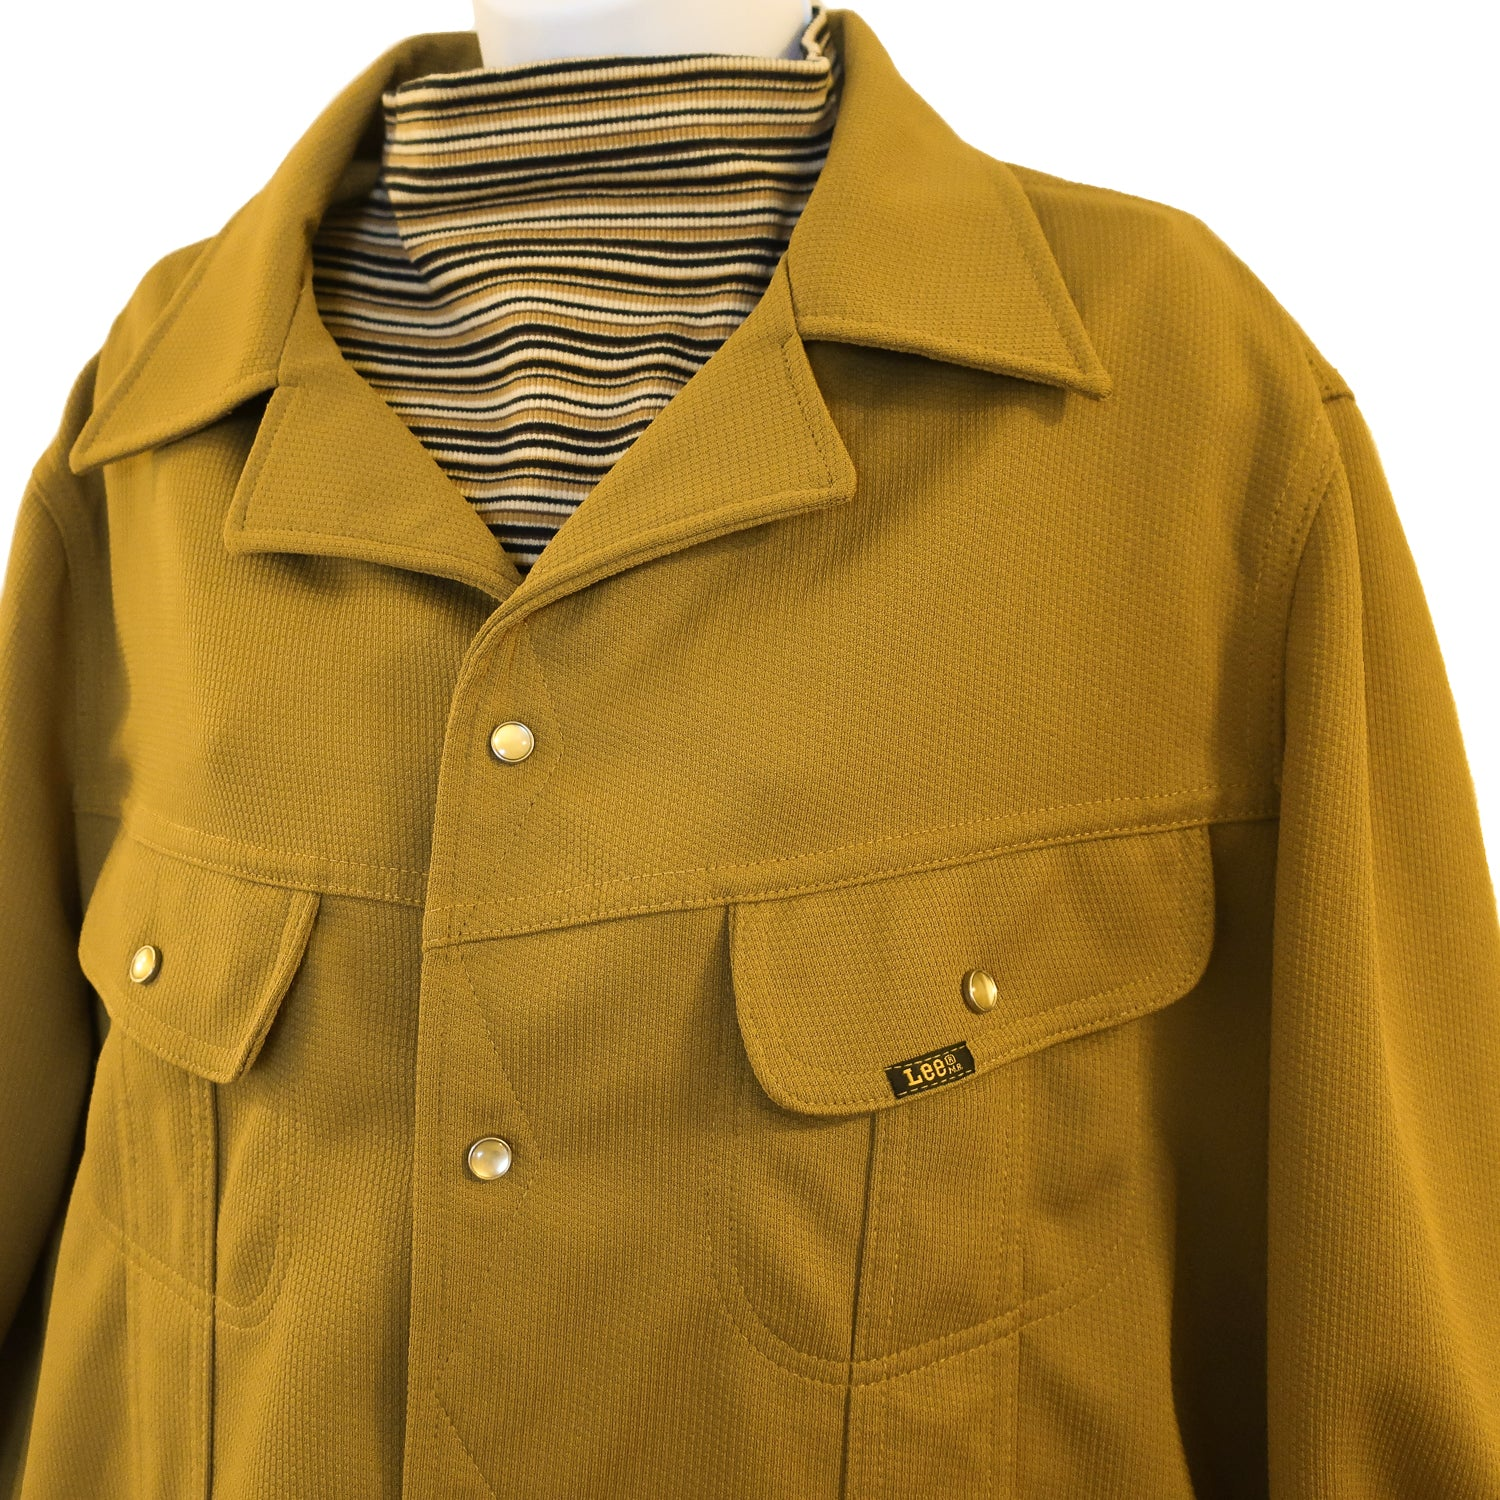 Second Room Vintage Clothing. Vintage 70s rare, mustard yellow Lee Riders jacket, with pearlized and silver snaps up the front, and on two front chest pockets. Free Shipping on all orders within North America.